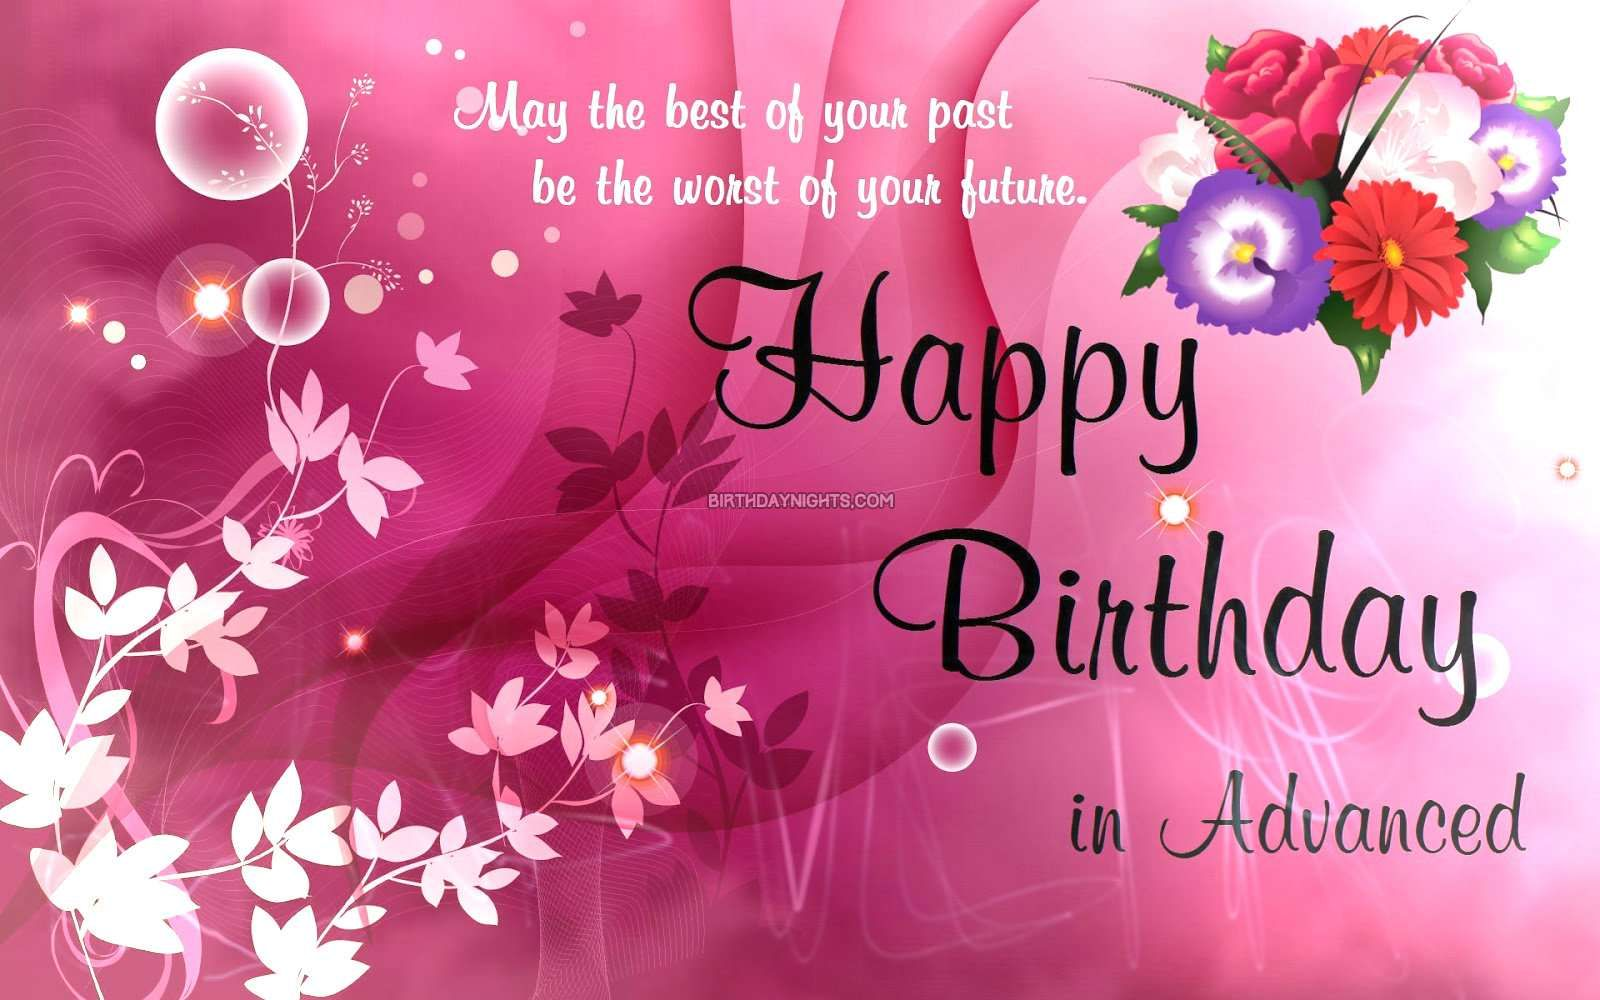 Advance happy birthday wishes pictures wallpapers things i love advance happy birthday wishes pictures wallpapers kristyandbryce Choice Image